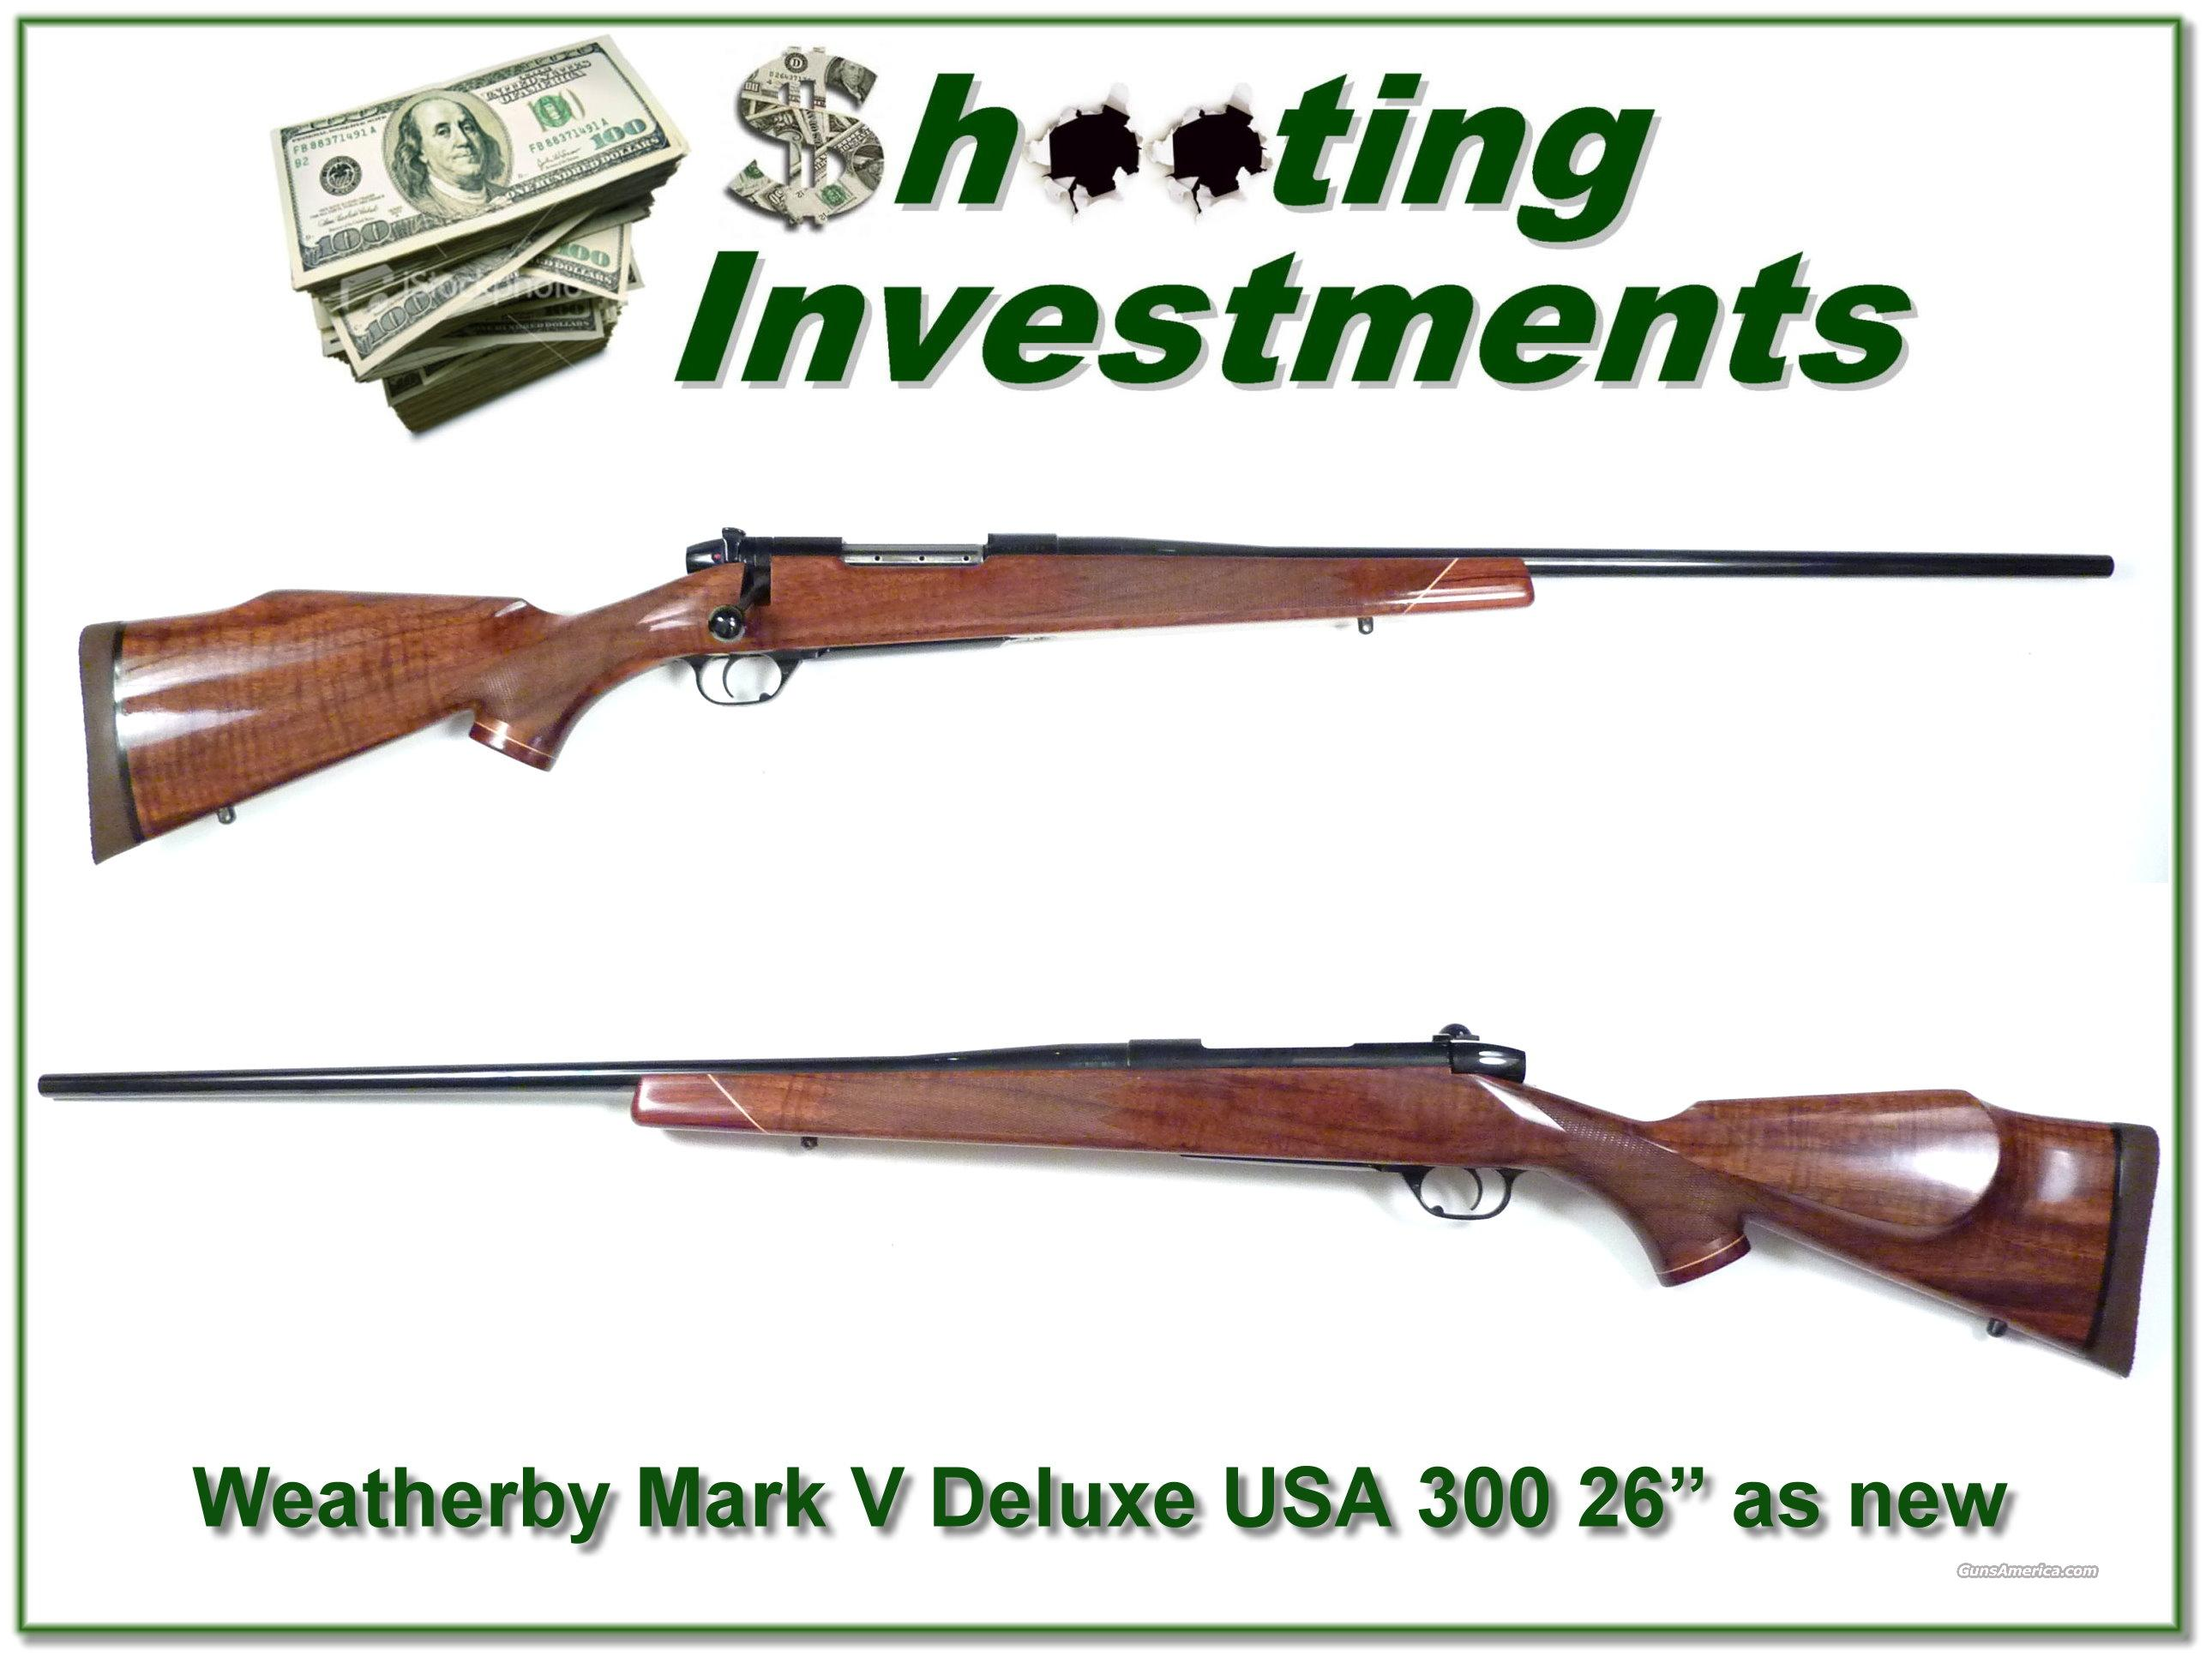 "Weatherby Mark V Deluxe USA 300 26"" as new  Guns > Rifles > Weatherby Rifles > Sporting"